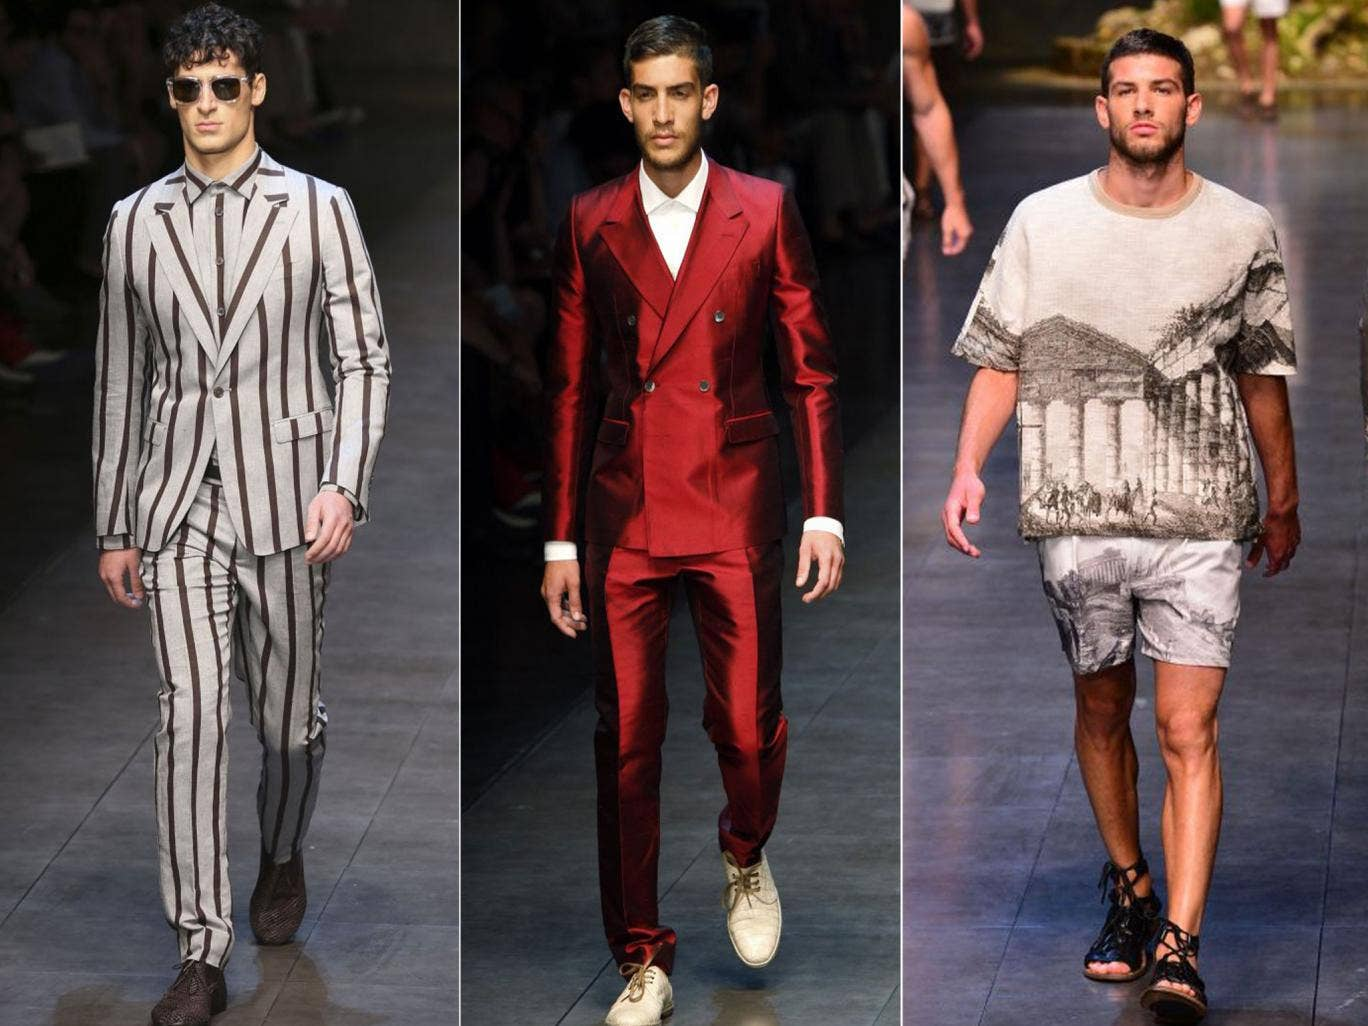 Dolce and Gabbana mined Sicilian mythology for inspiration. Plus, some eye-catching suits